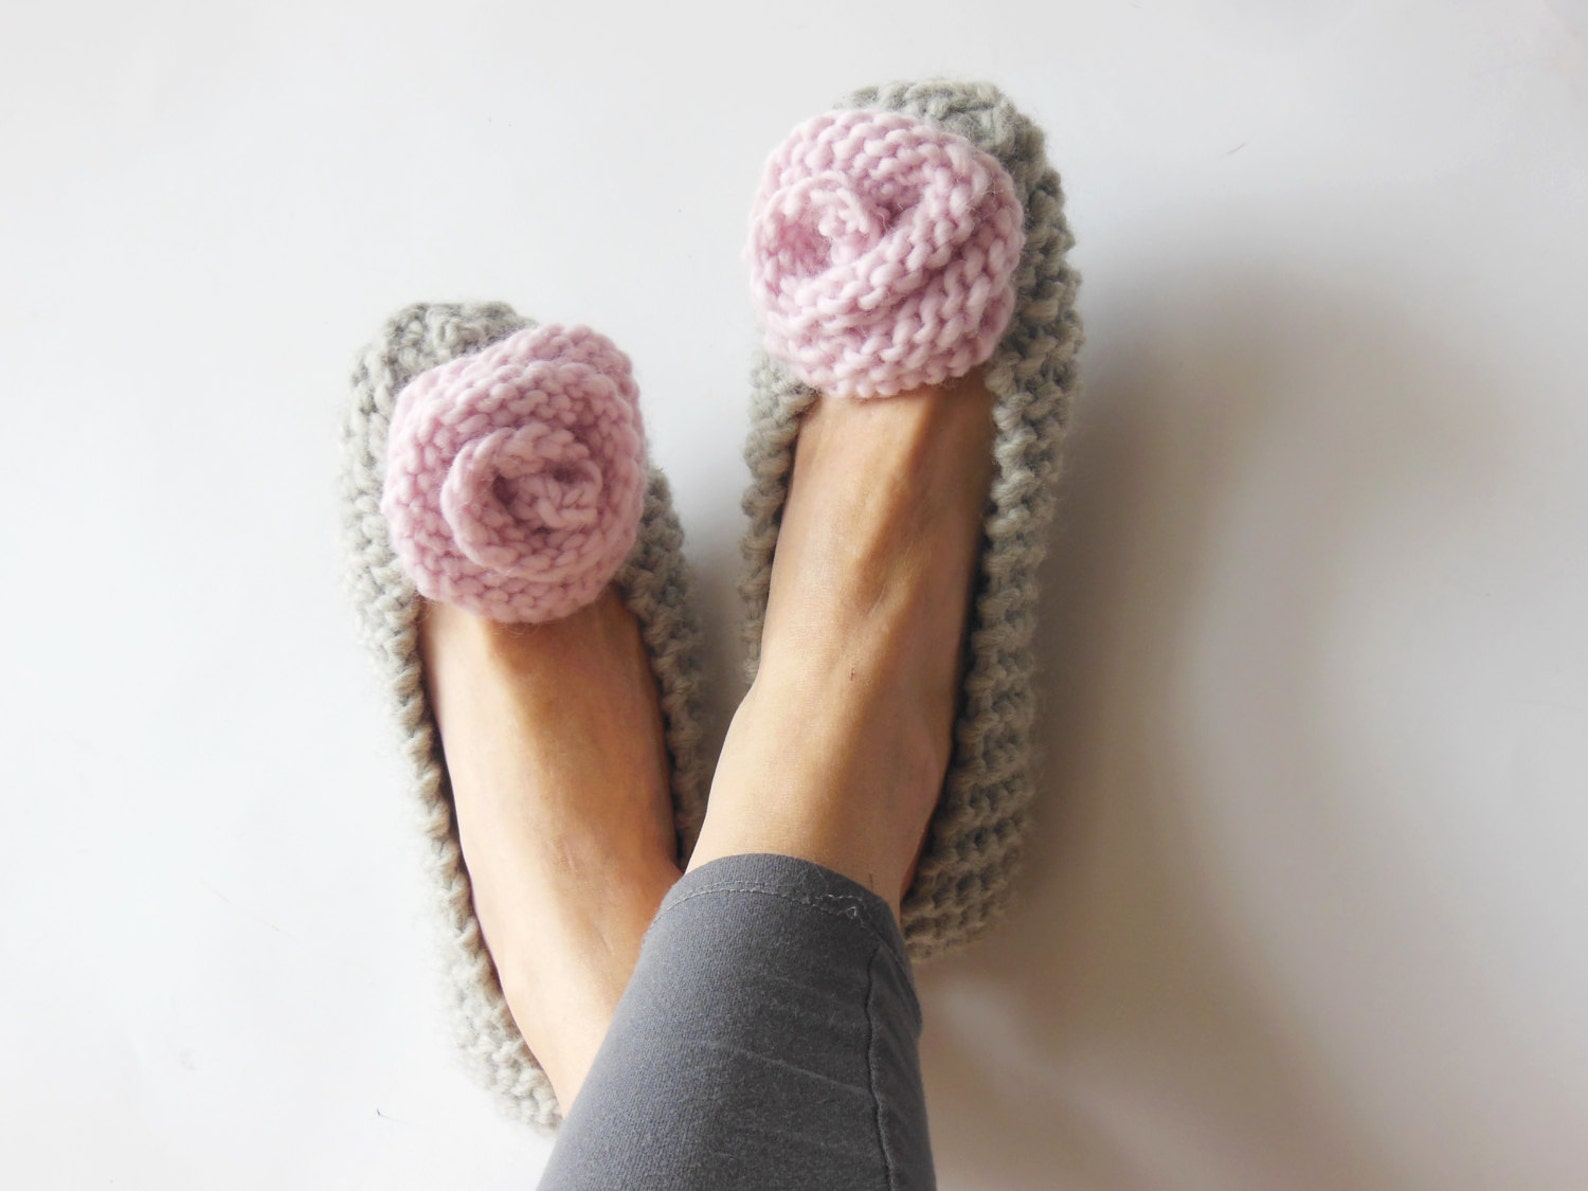 100% wool brand yarn, gray slippers, women's non-slip slippers, warm chunky slippers, pink roses, ballet flats, home shoes,